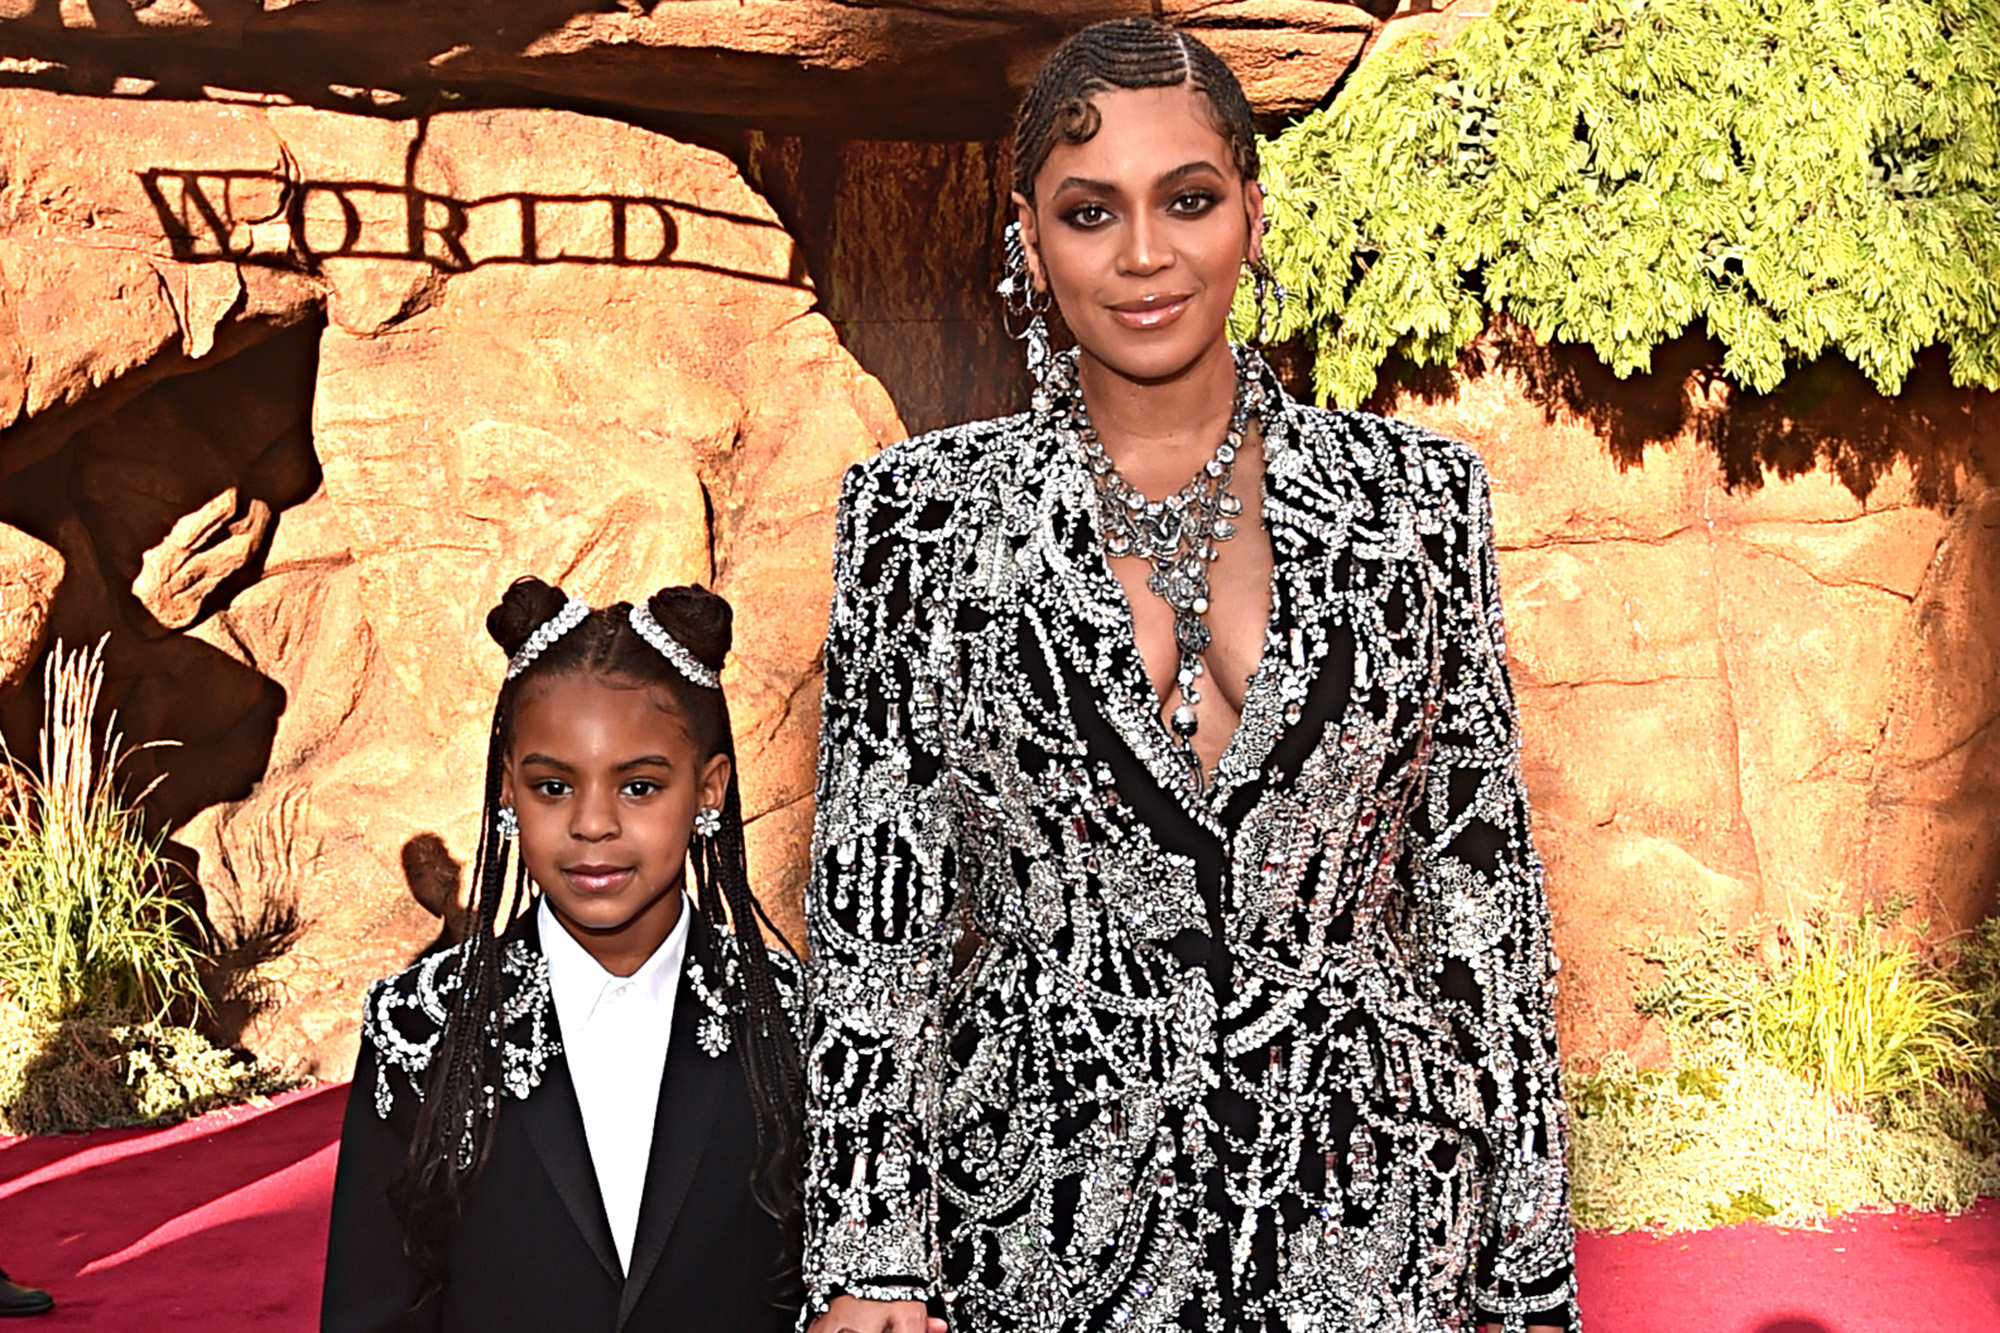 Beyonce S Daughter Blue Ivy Carter Becomes Award Winning Songwriter At Age 7